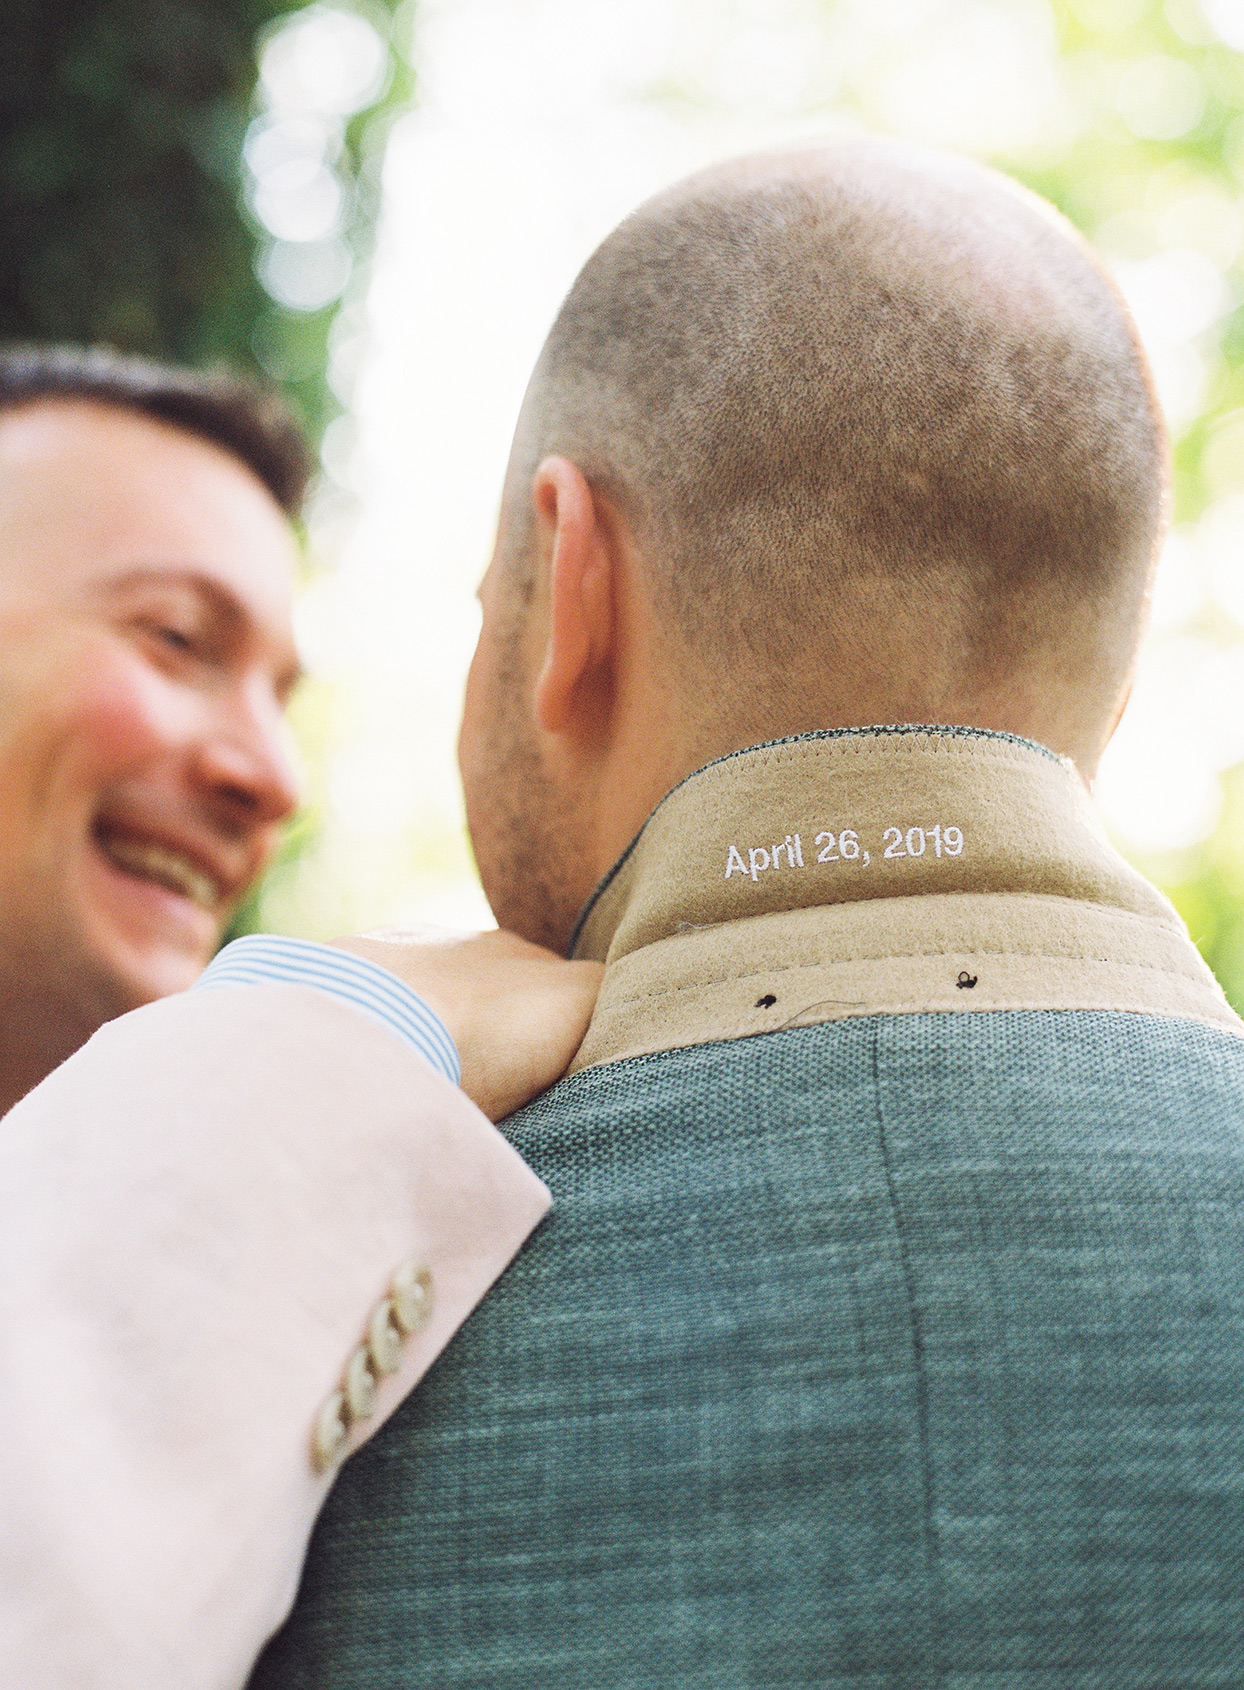 groom's welcome party jacket embroidered with date